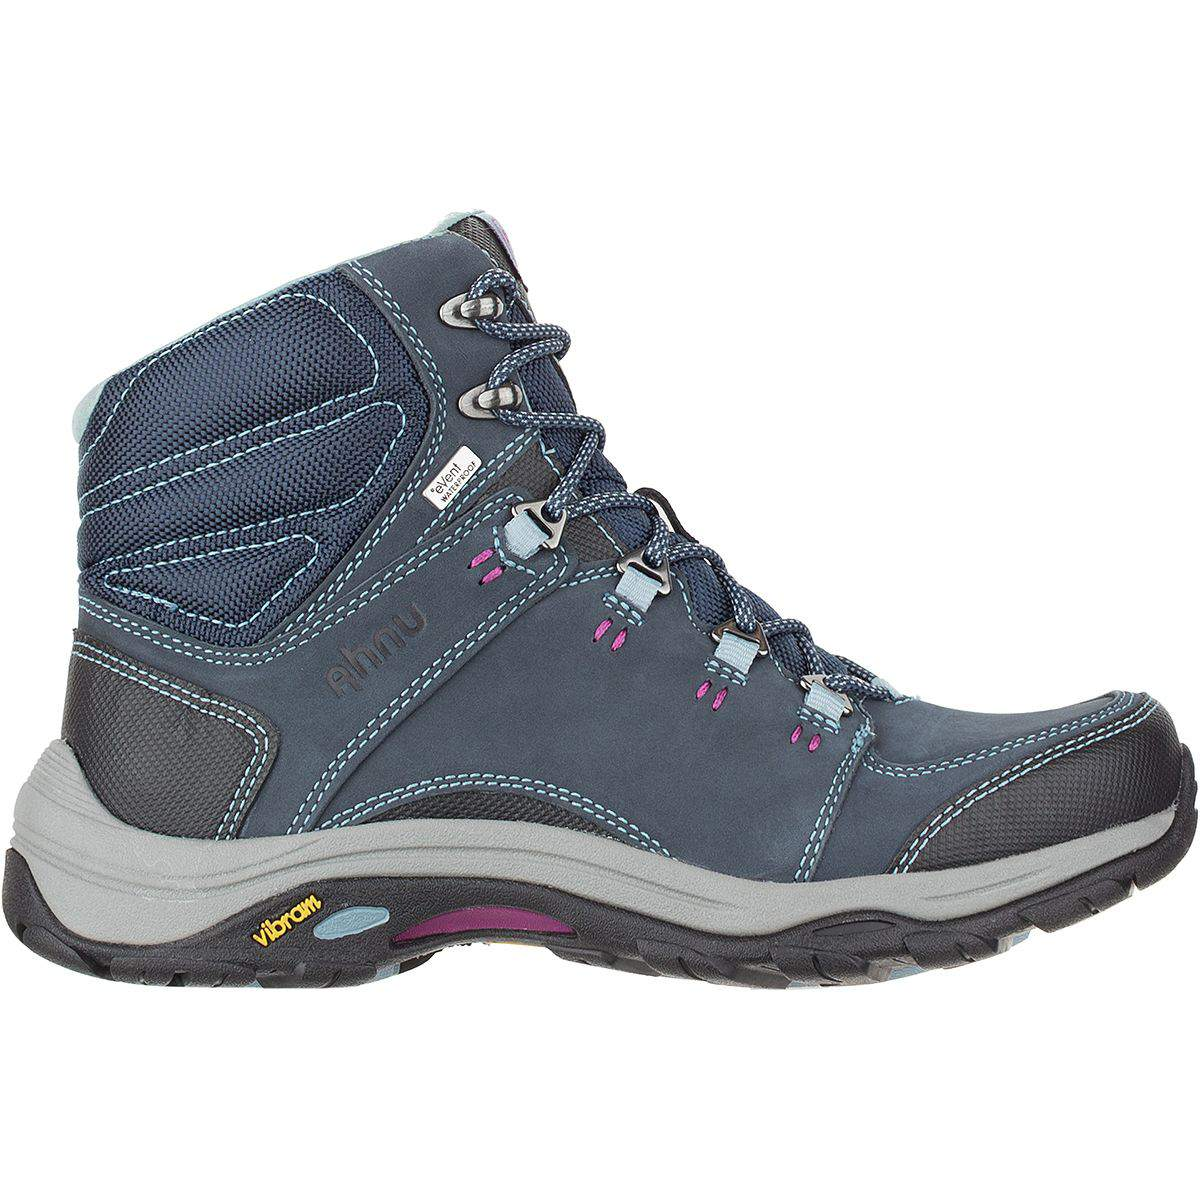 234d62355 The 8 Best Women s Hiking Boots of 2019